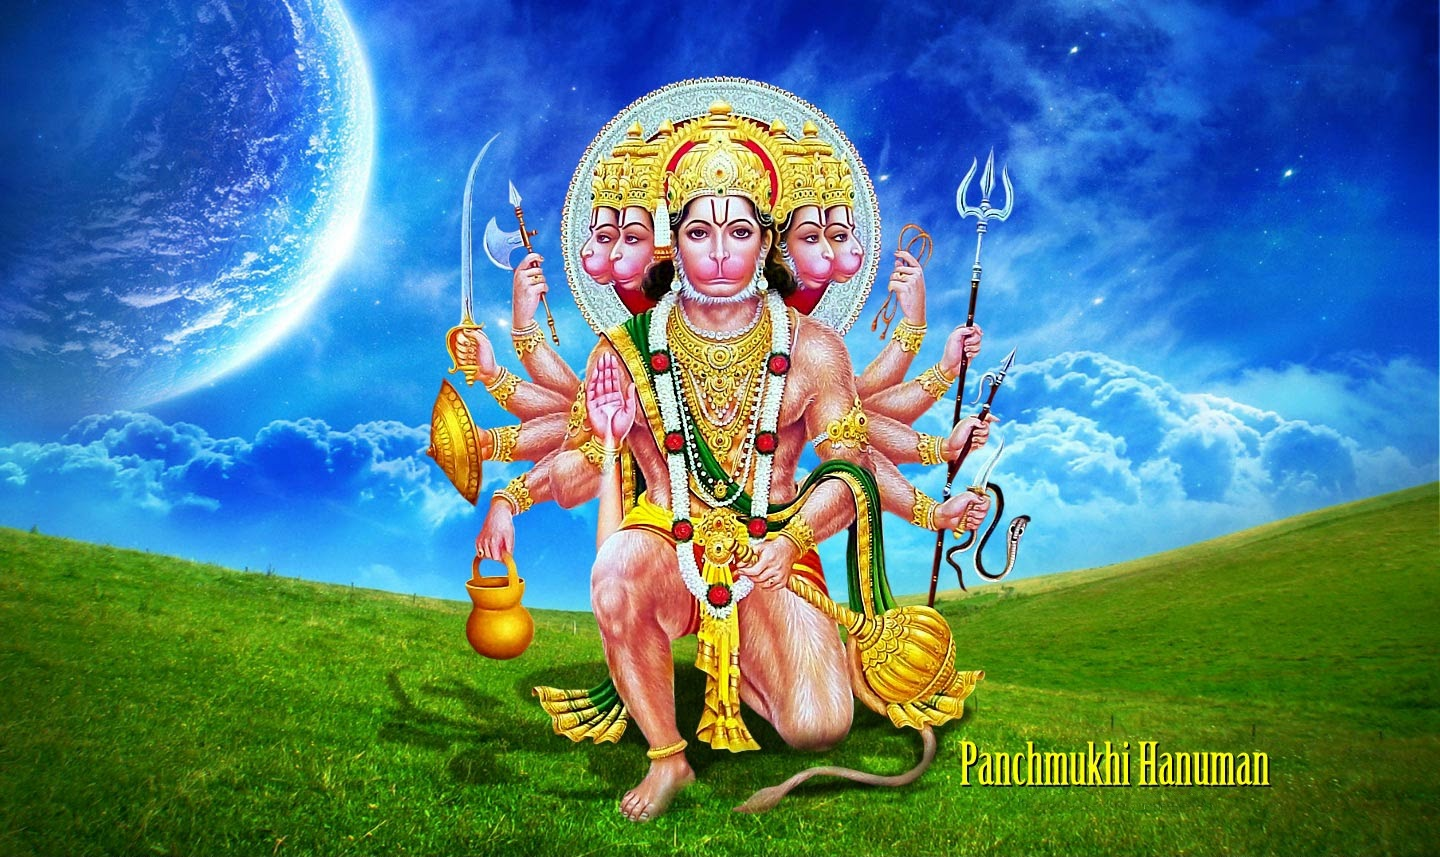 panchmukhi hanuman ji photos for desktop background